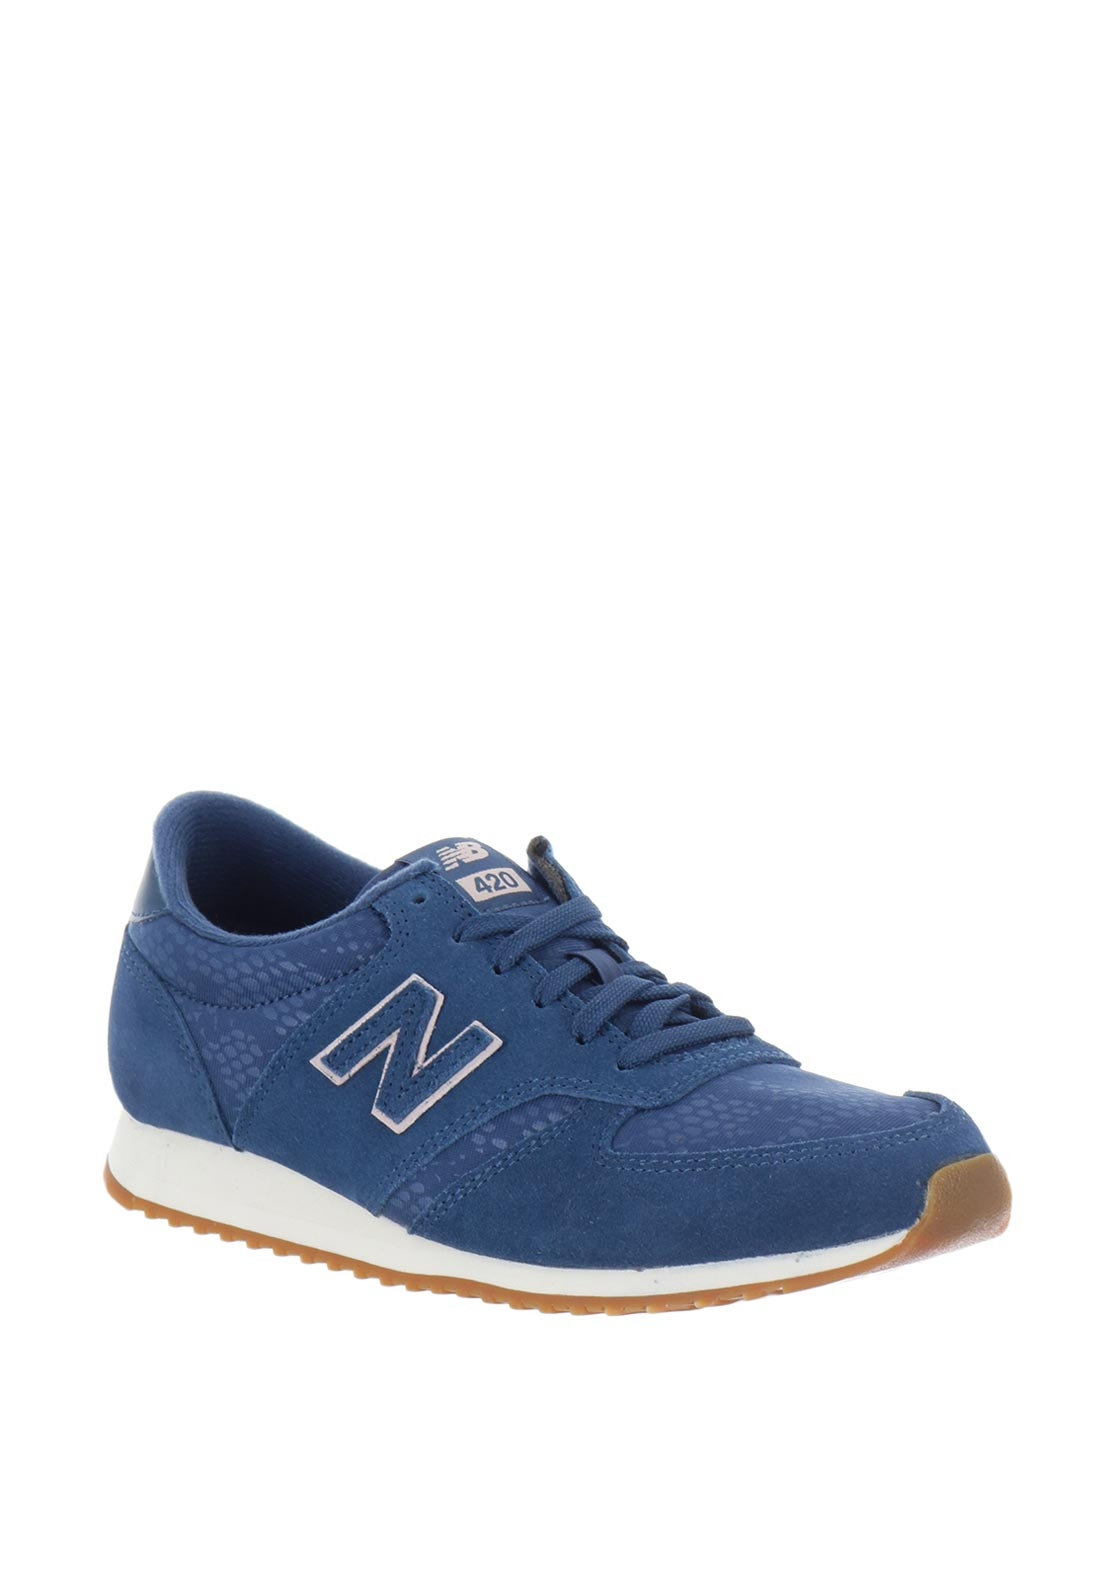 660ddf7890a0 ... sweden new balance womens 420 suede mix trainers blue 76d7a daf56